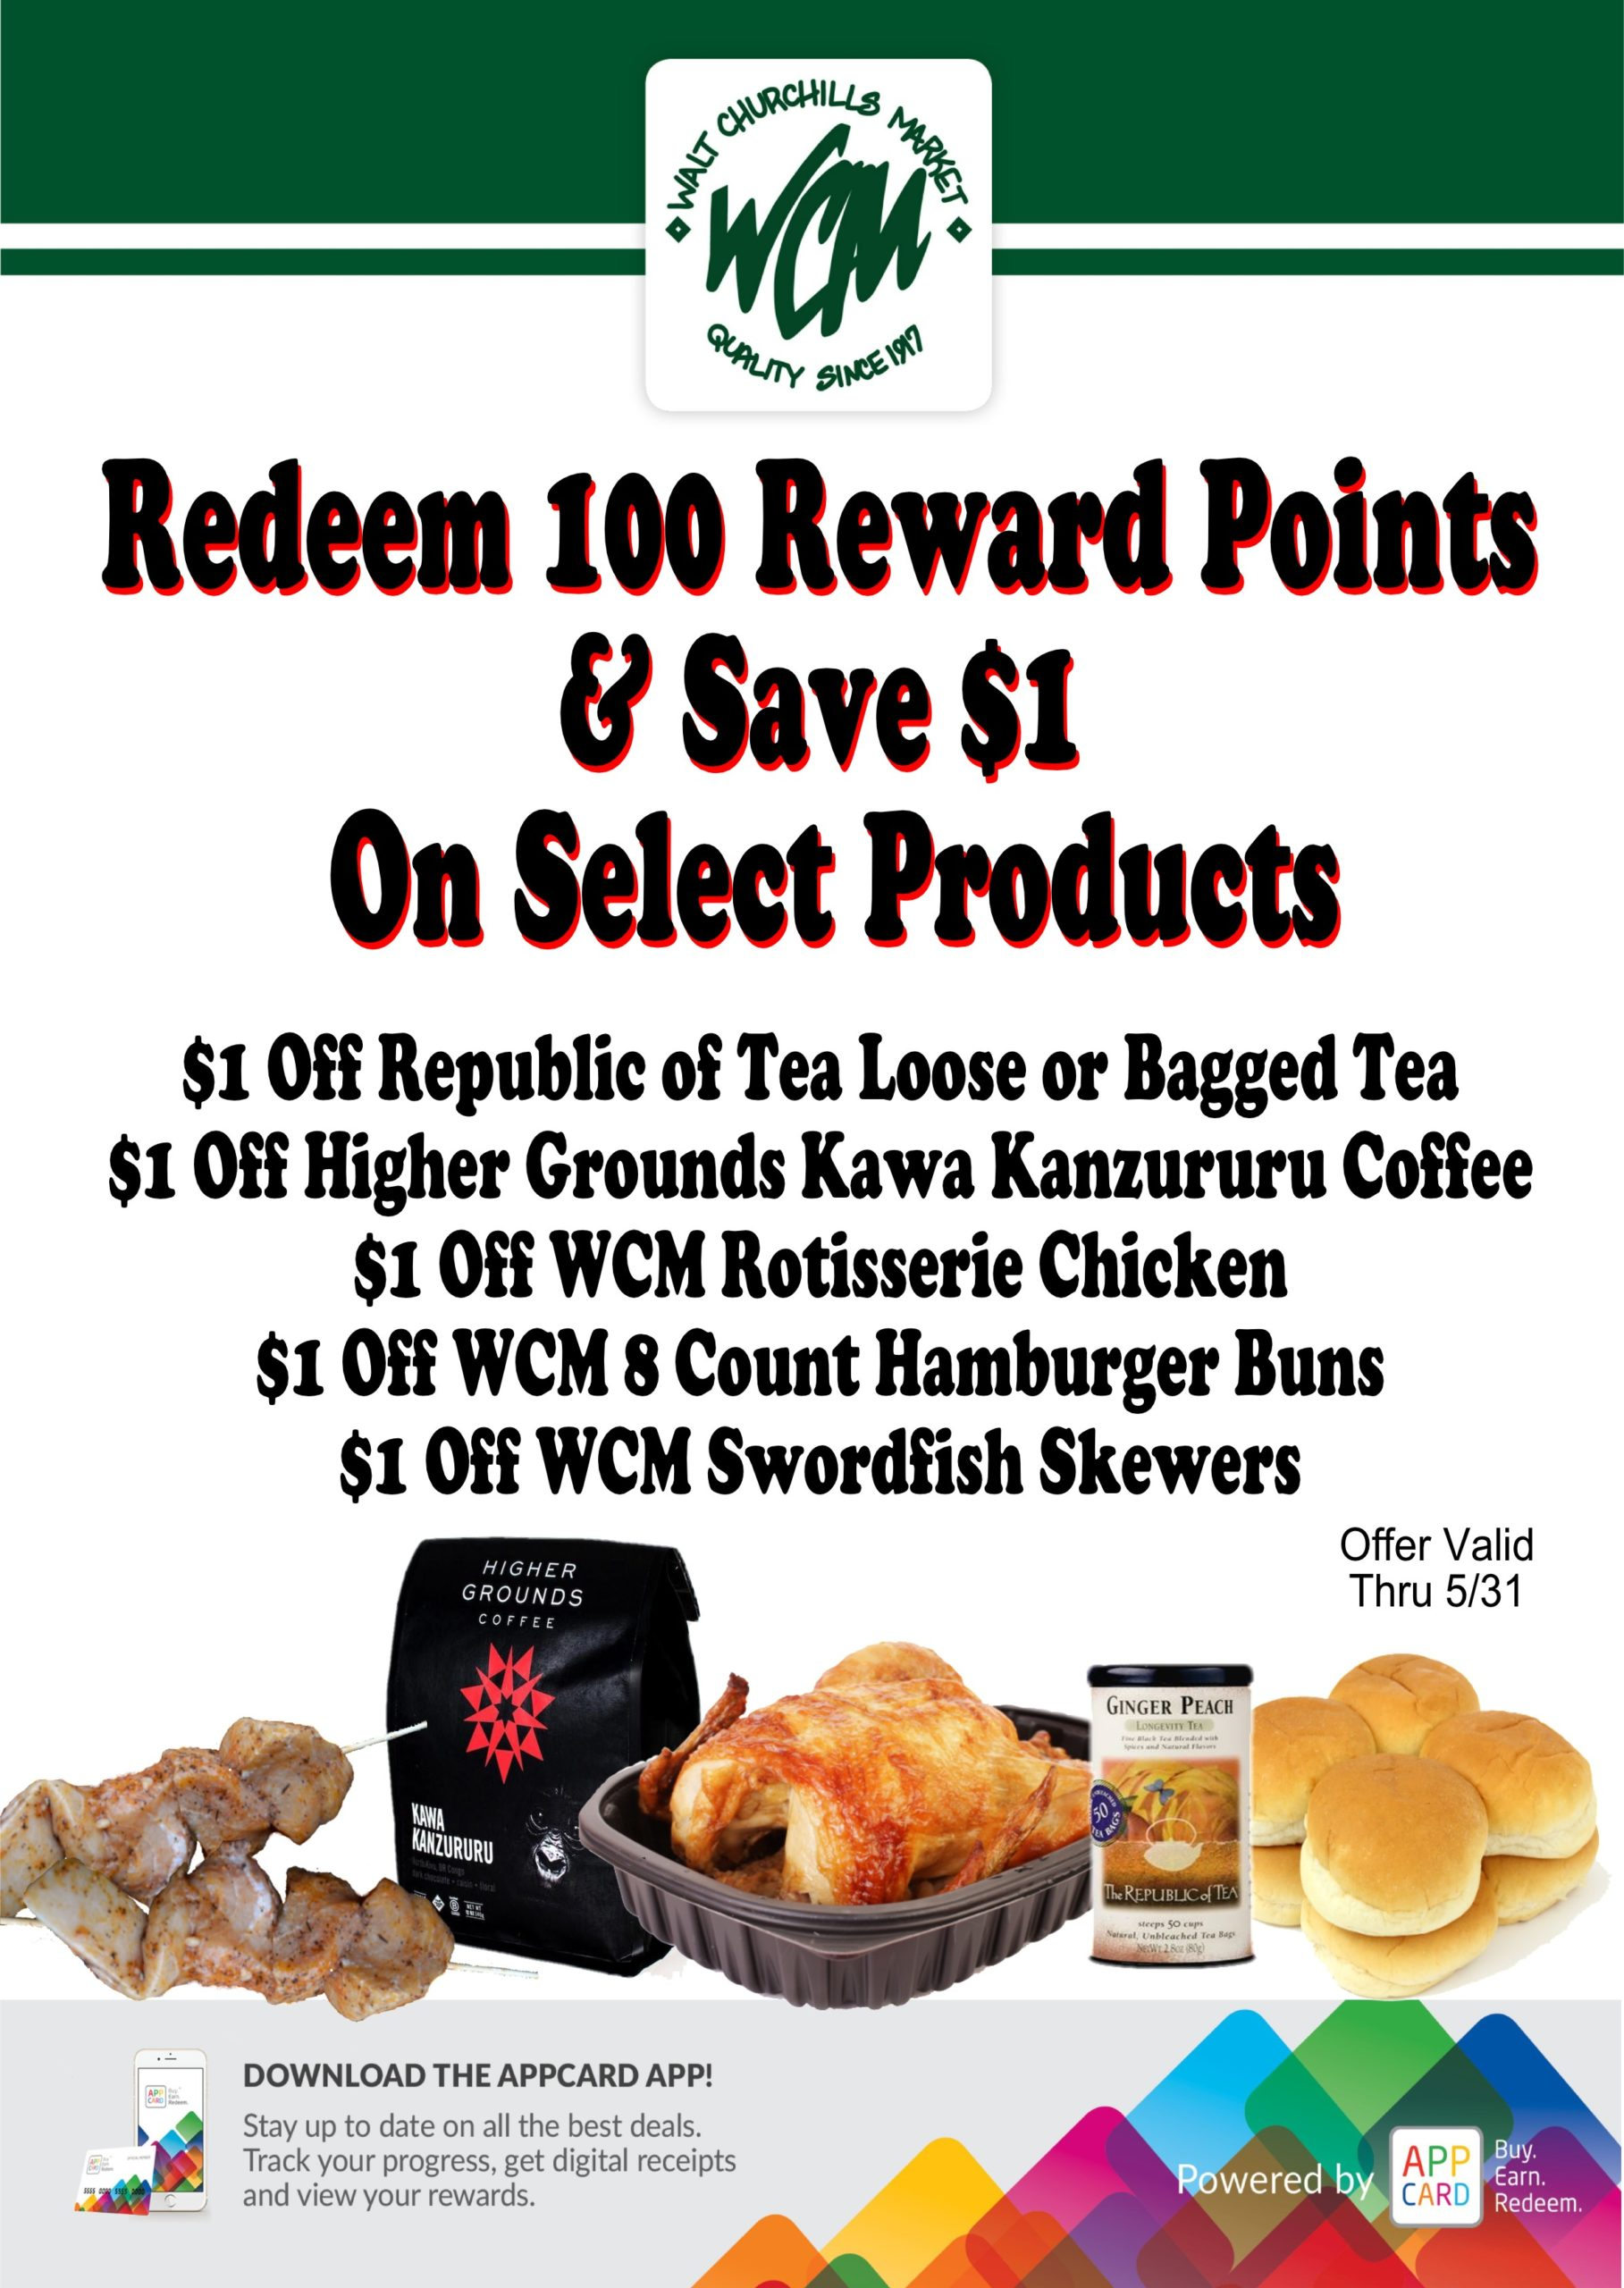 Redeen 100 Reward Points and save $1 on select products